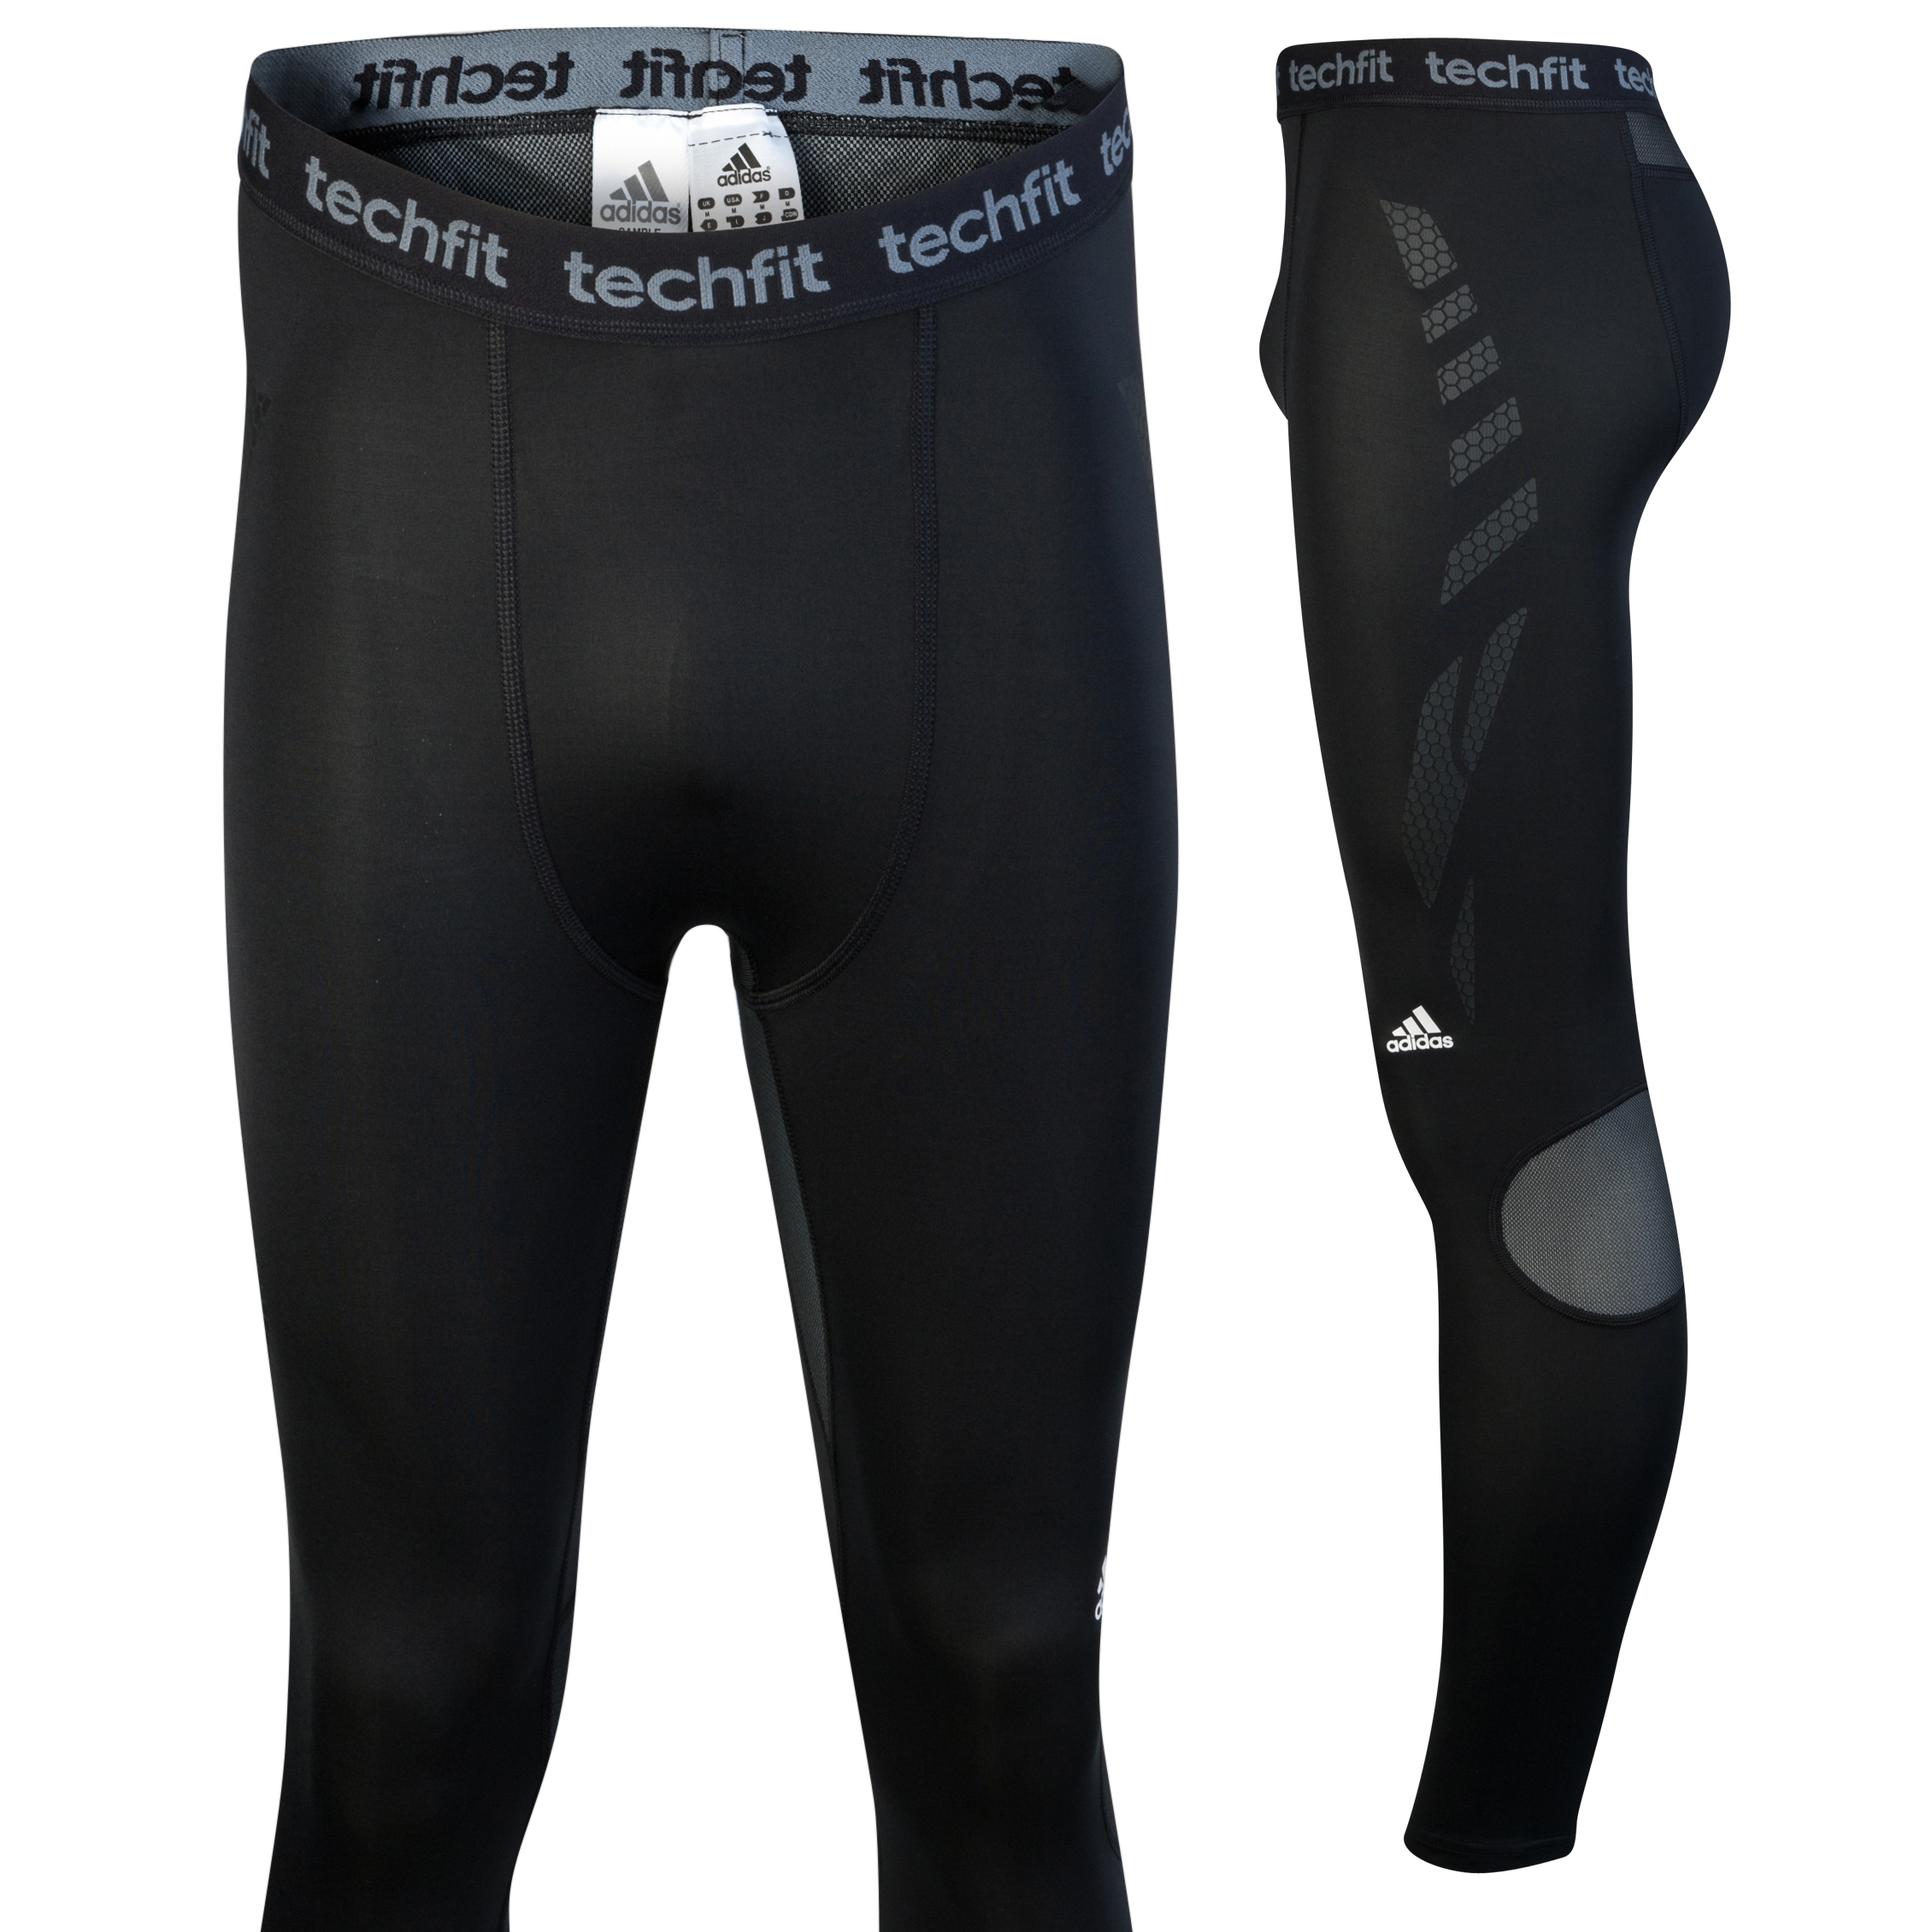 Adidas TechFit Preperation Tights - Black